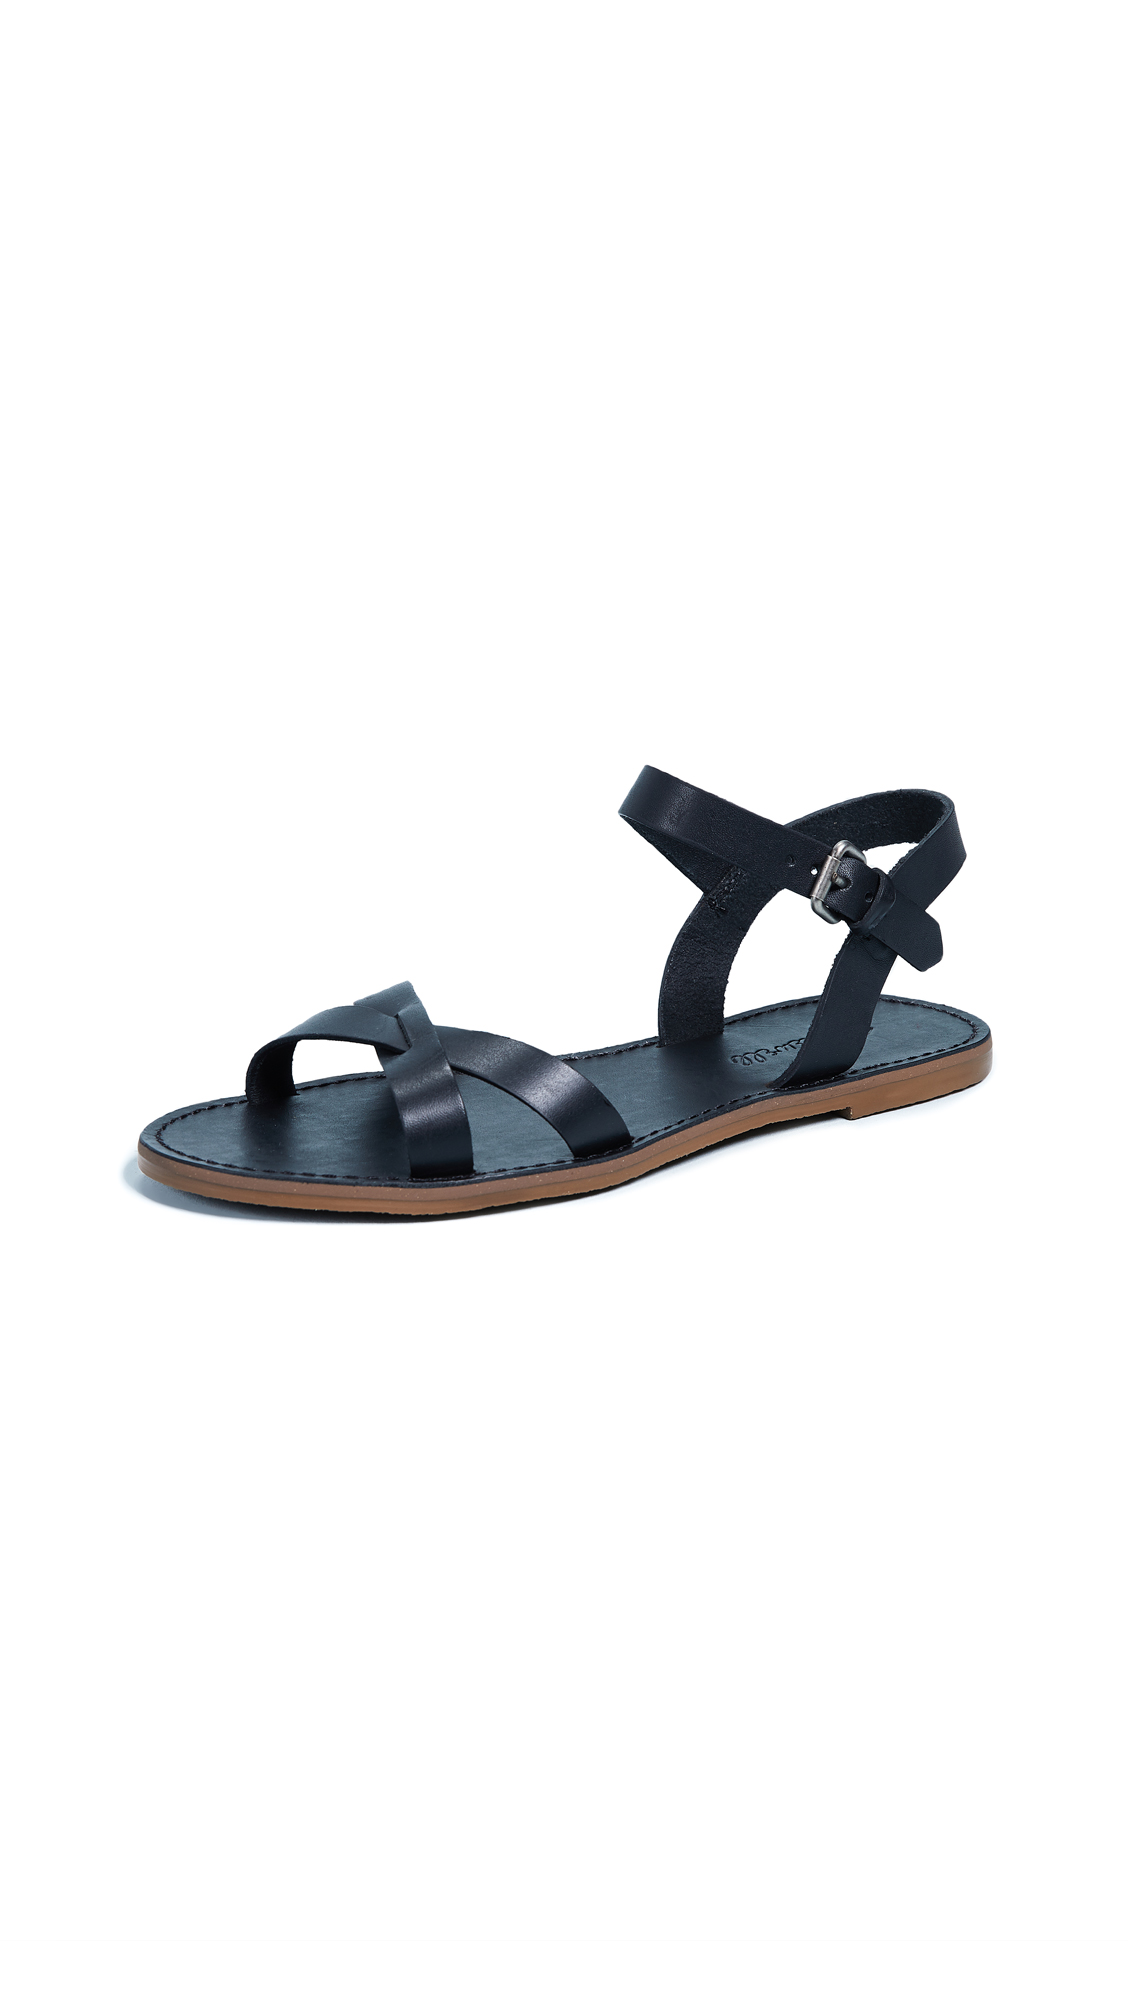 Madewell The Boardwalk Crisscross Sandals - True Black